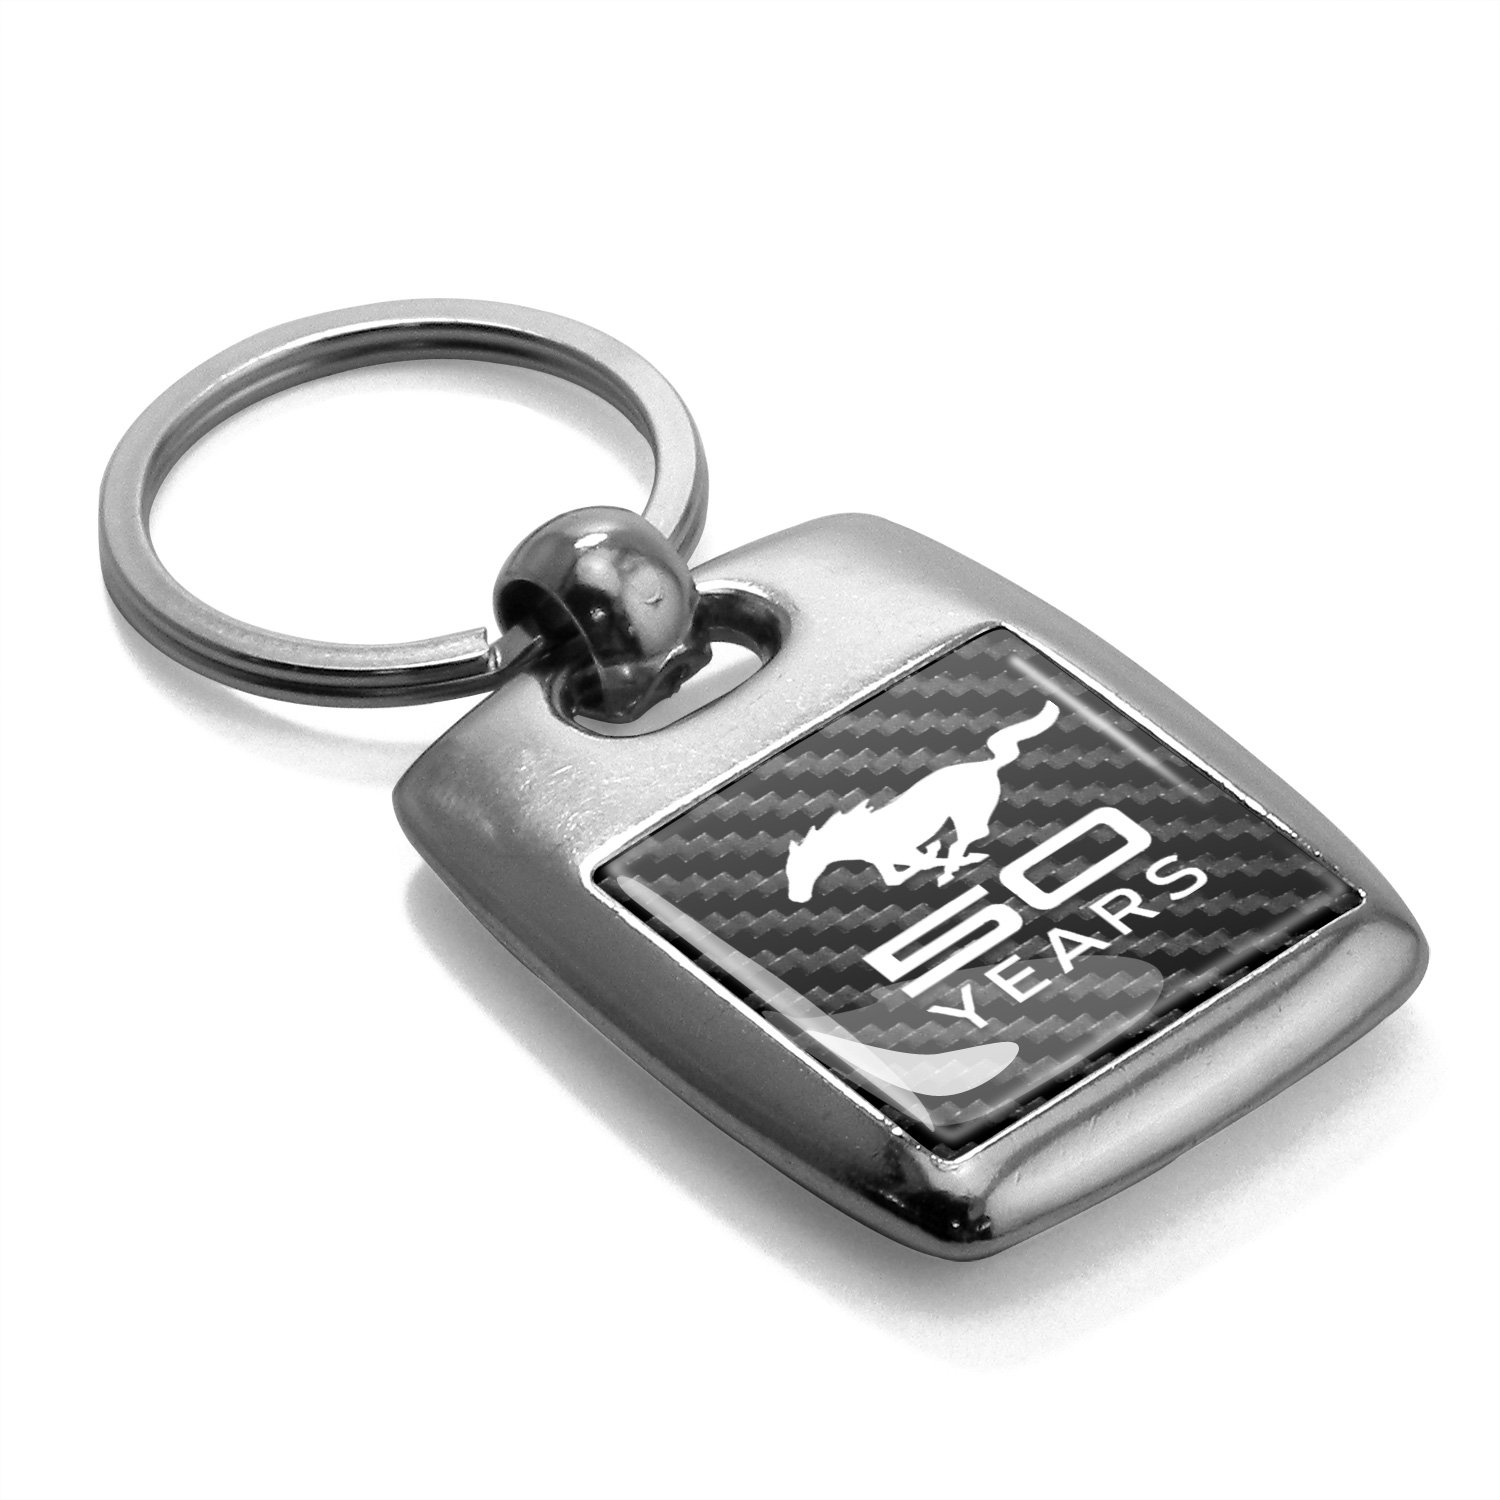 Ford Mustang 50 Years in Full Color with Carbon Fiber Backing Brush Silver Metal Key Chain